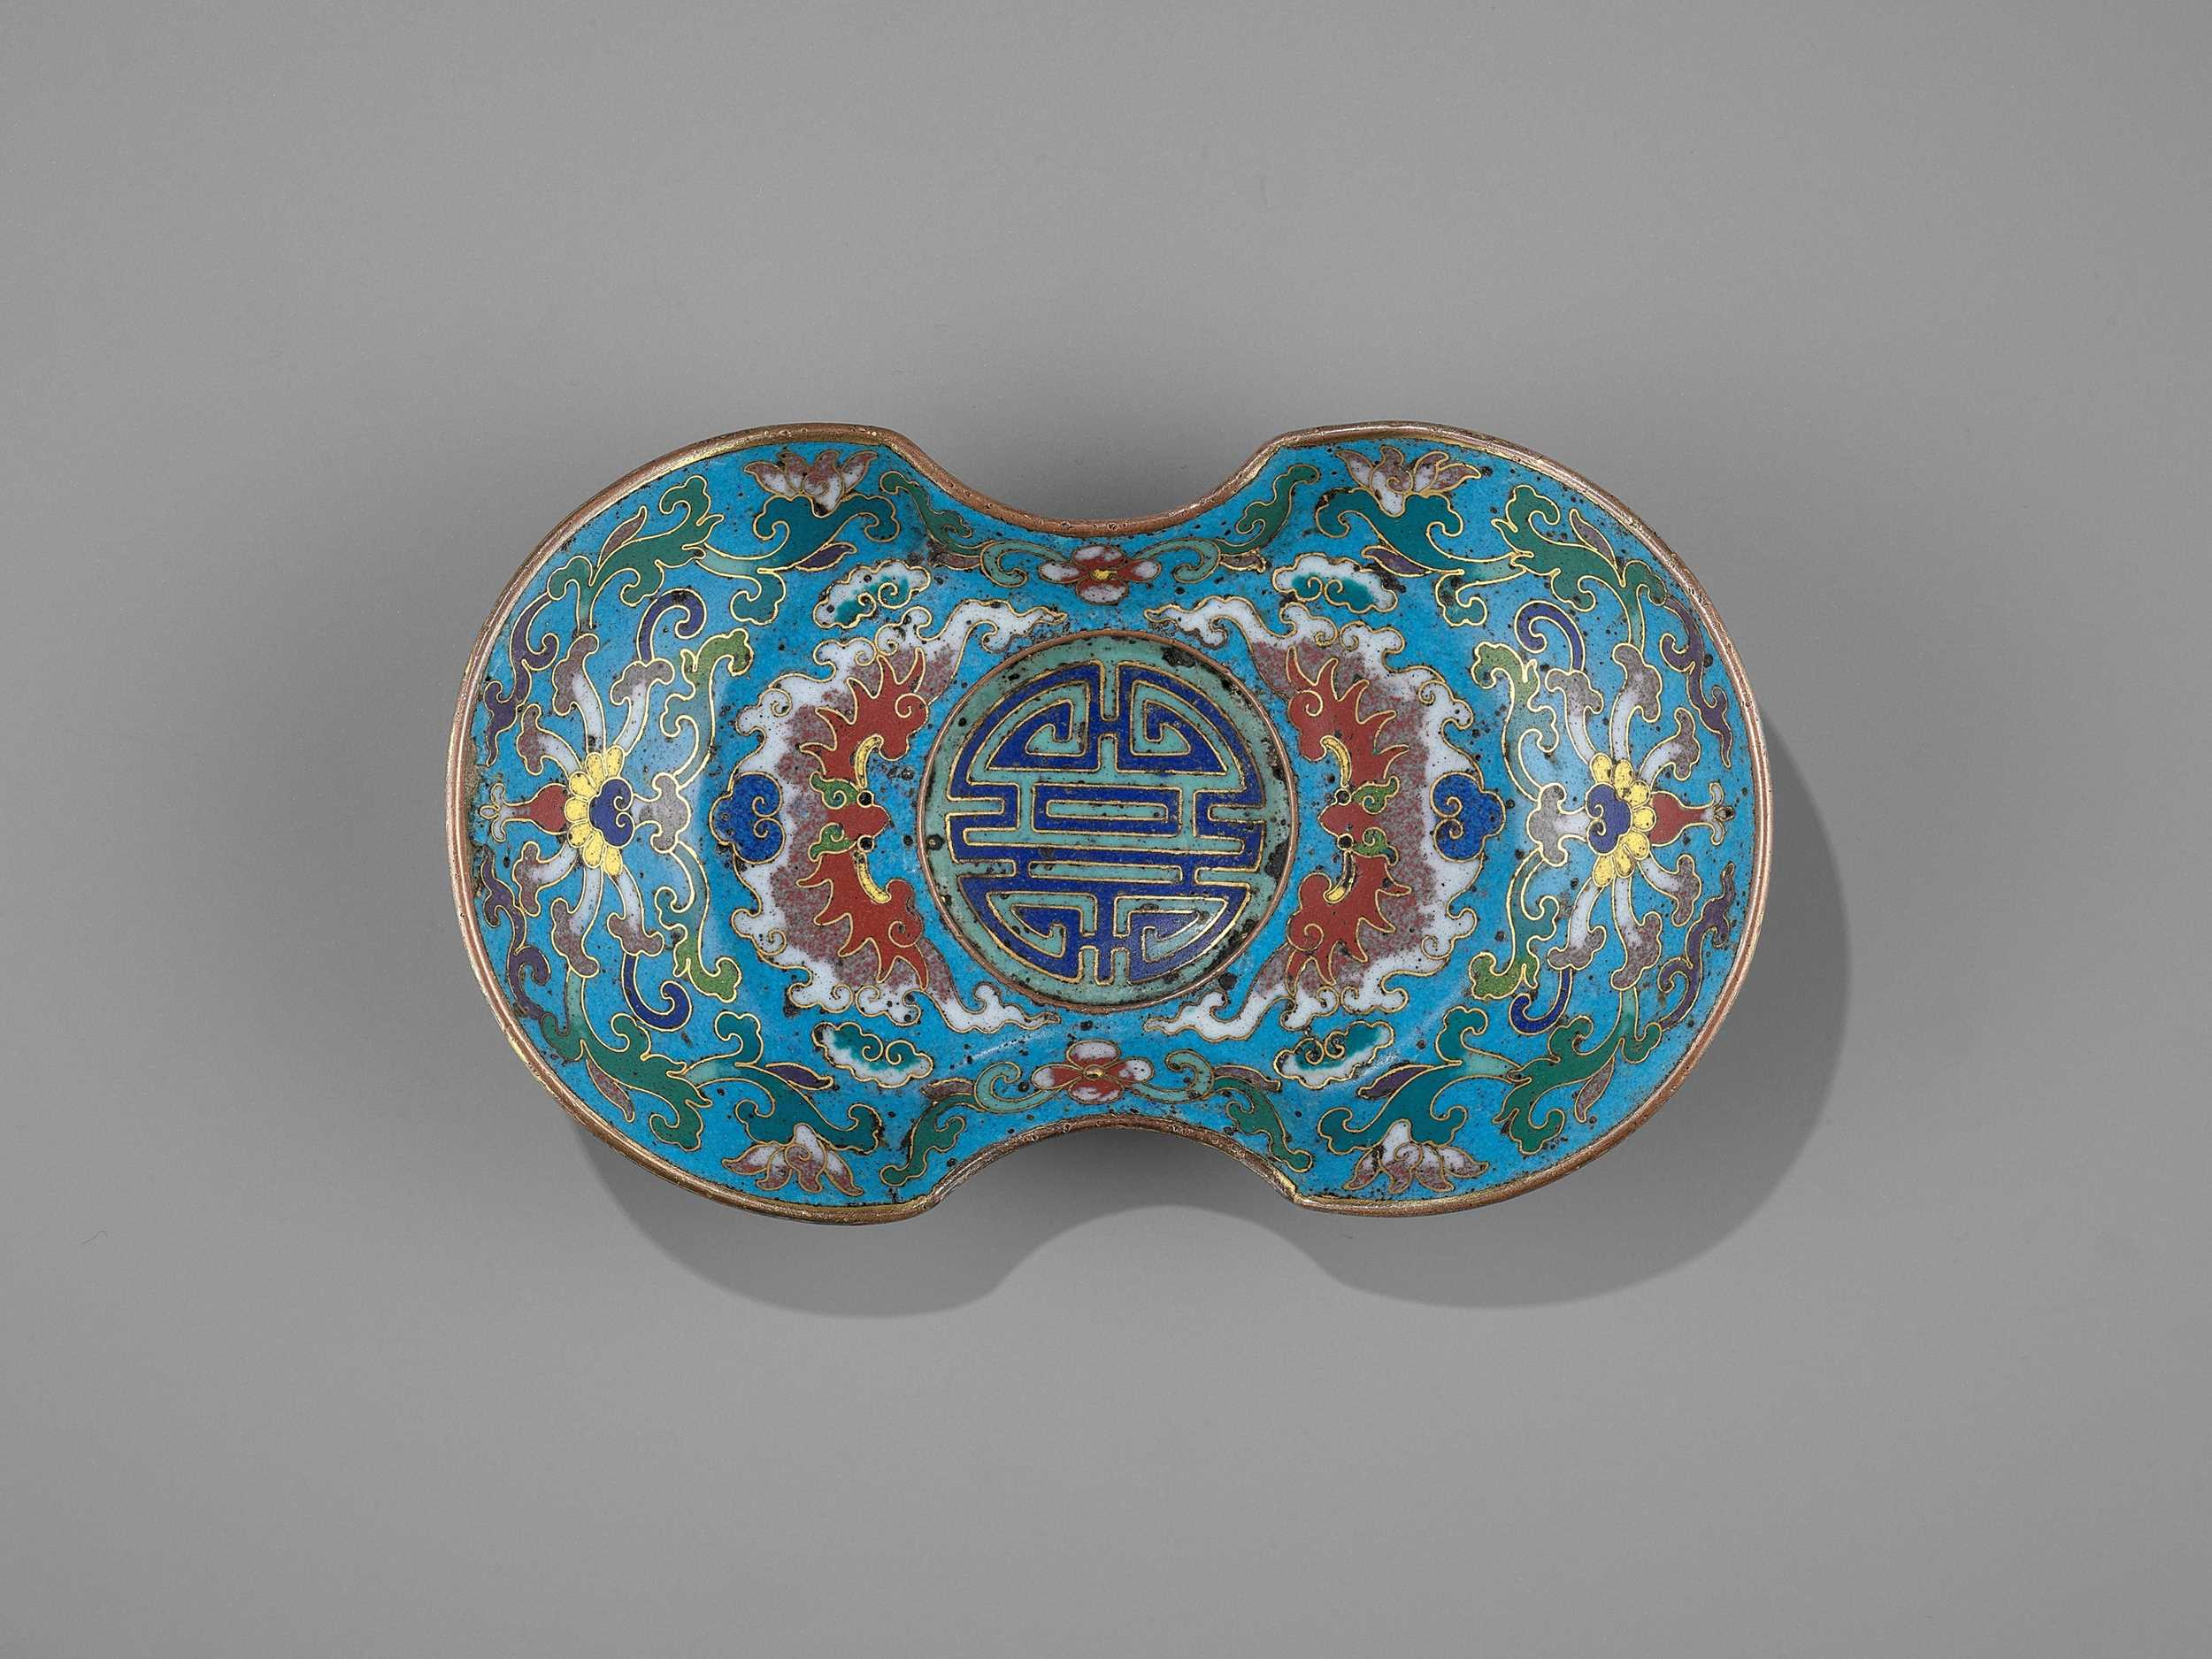 Lot 4 - A CLOISONNÉ AND GILT-BRONZE 'DOUBLE HAPPINESS' CUP STAND, QIANLONG